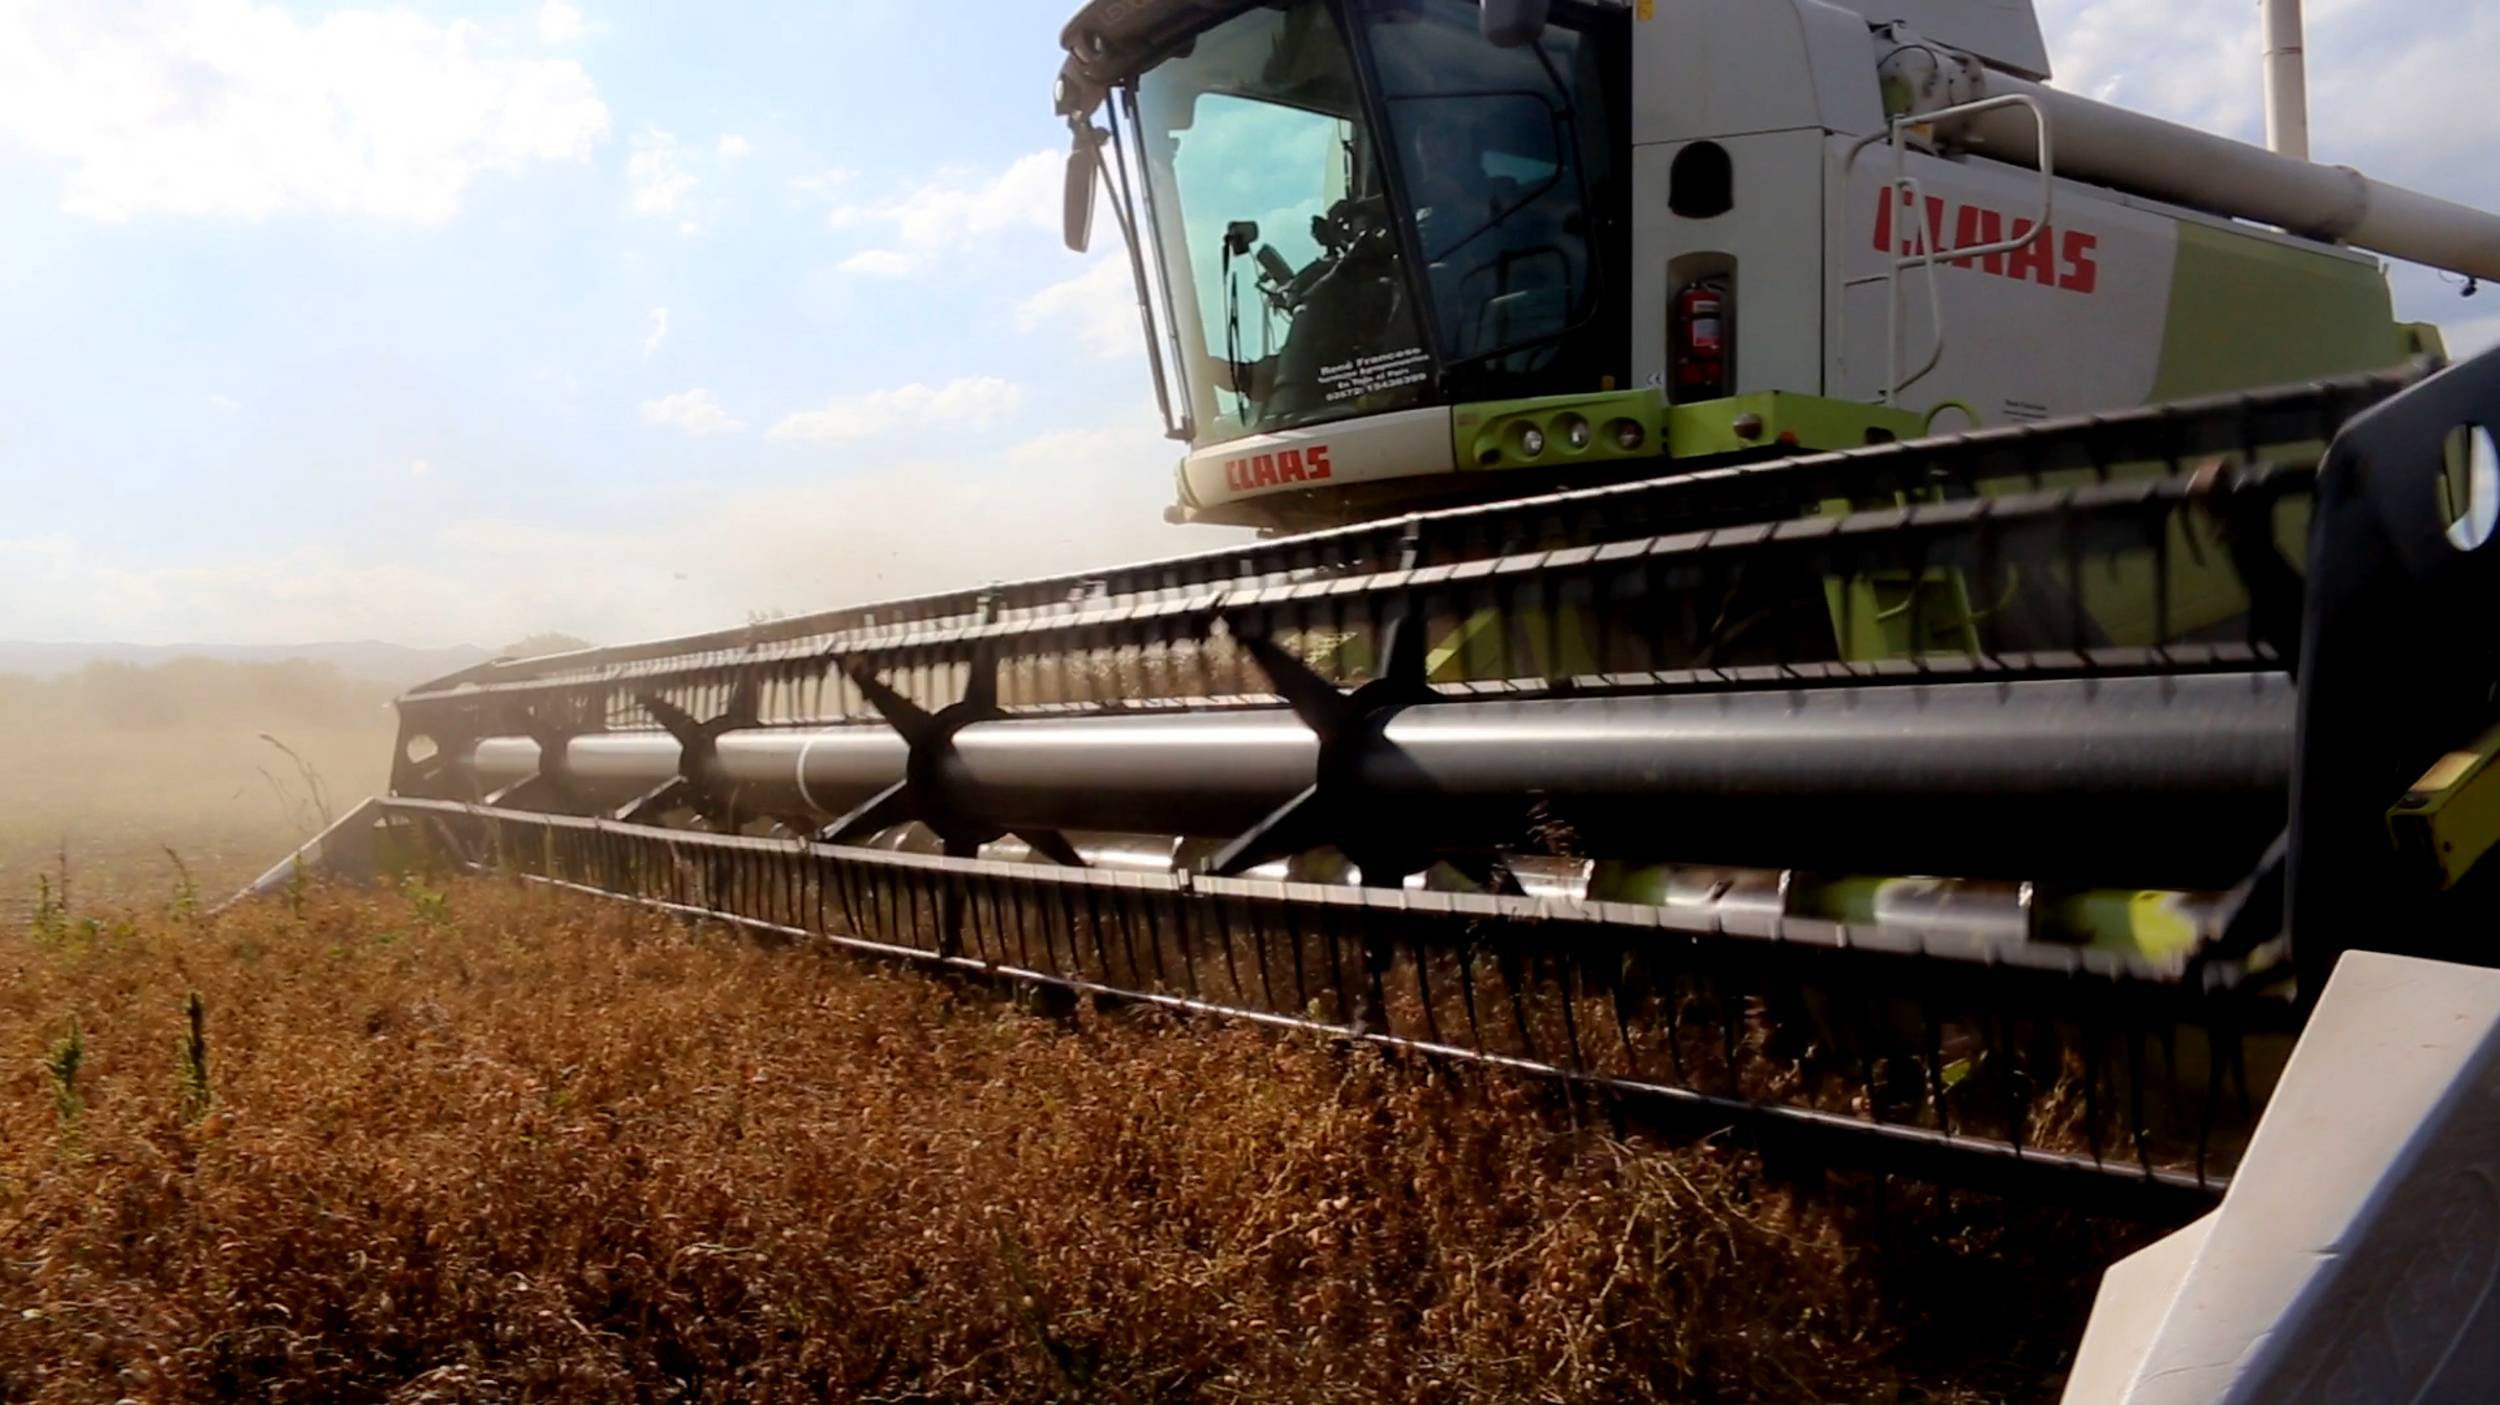 Modern technology ensures high efficiency during the harvest.